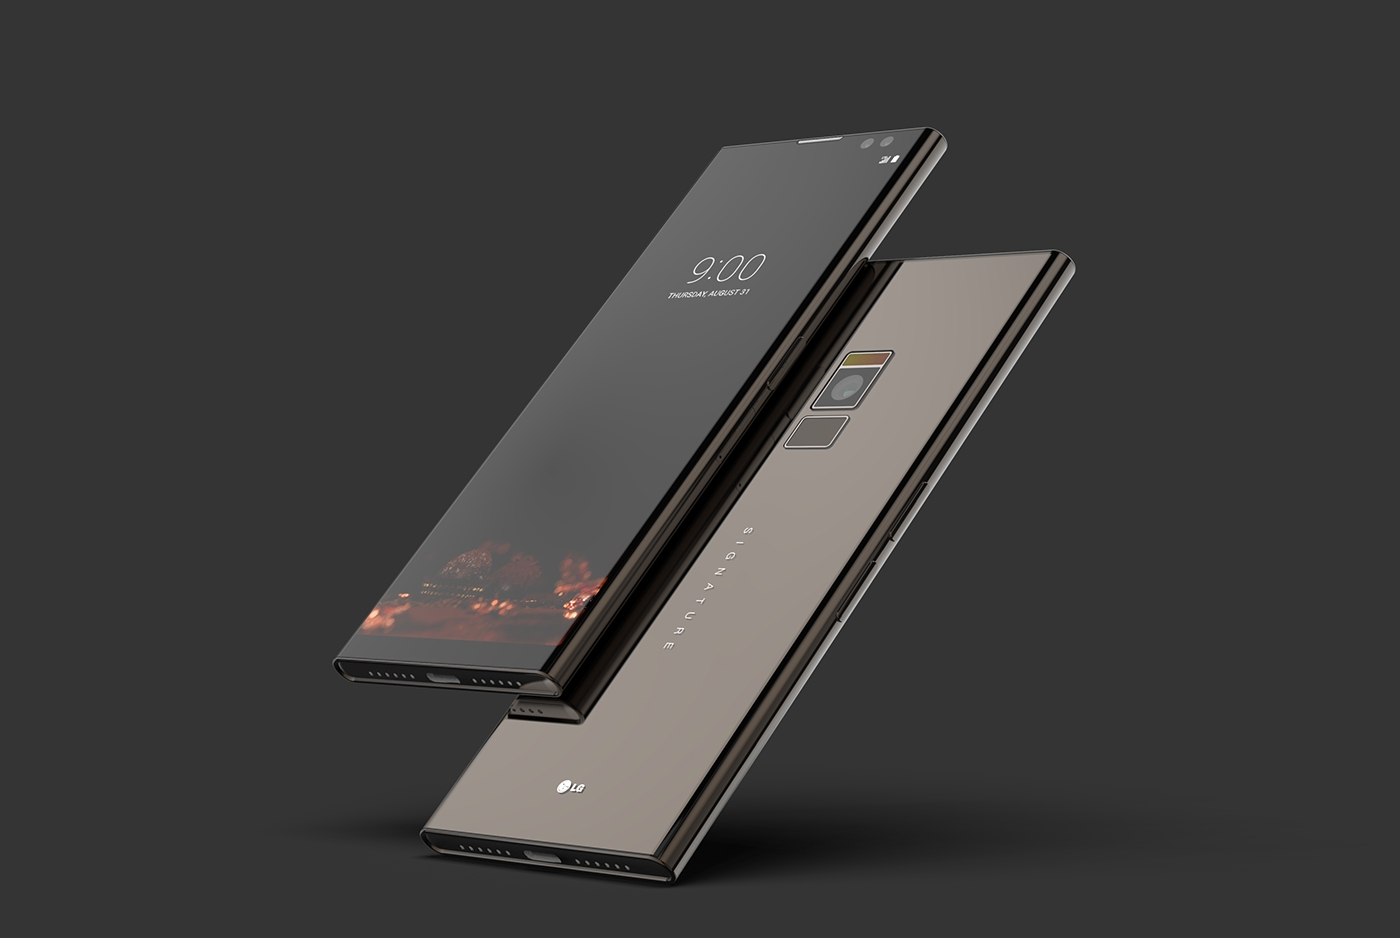 LG-Chocolate-U-concept-phone-3.jpg